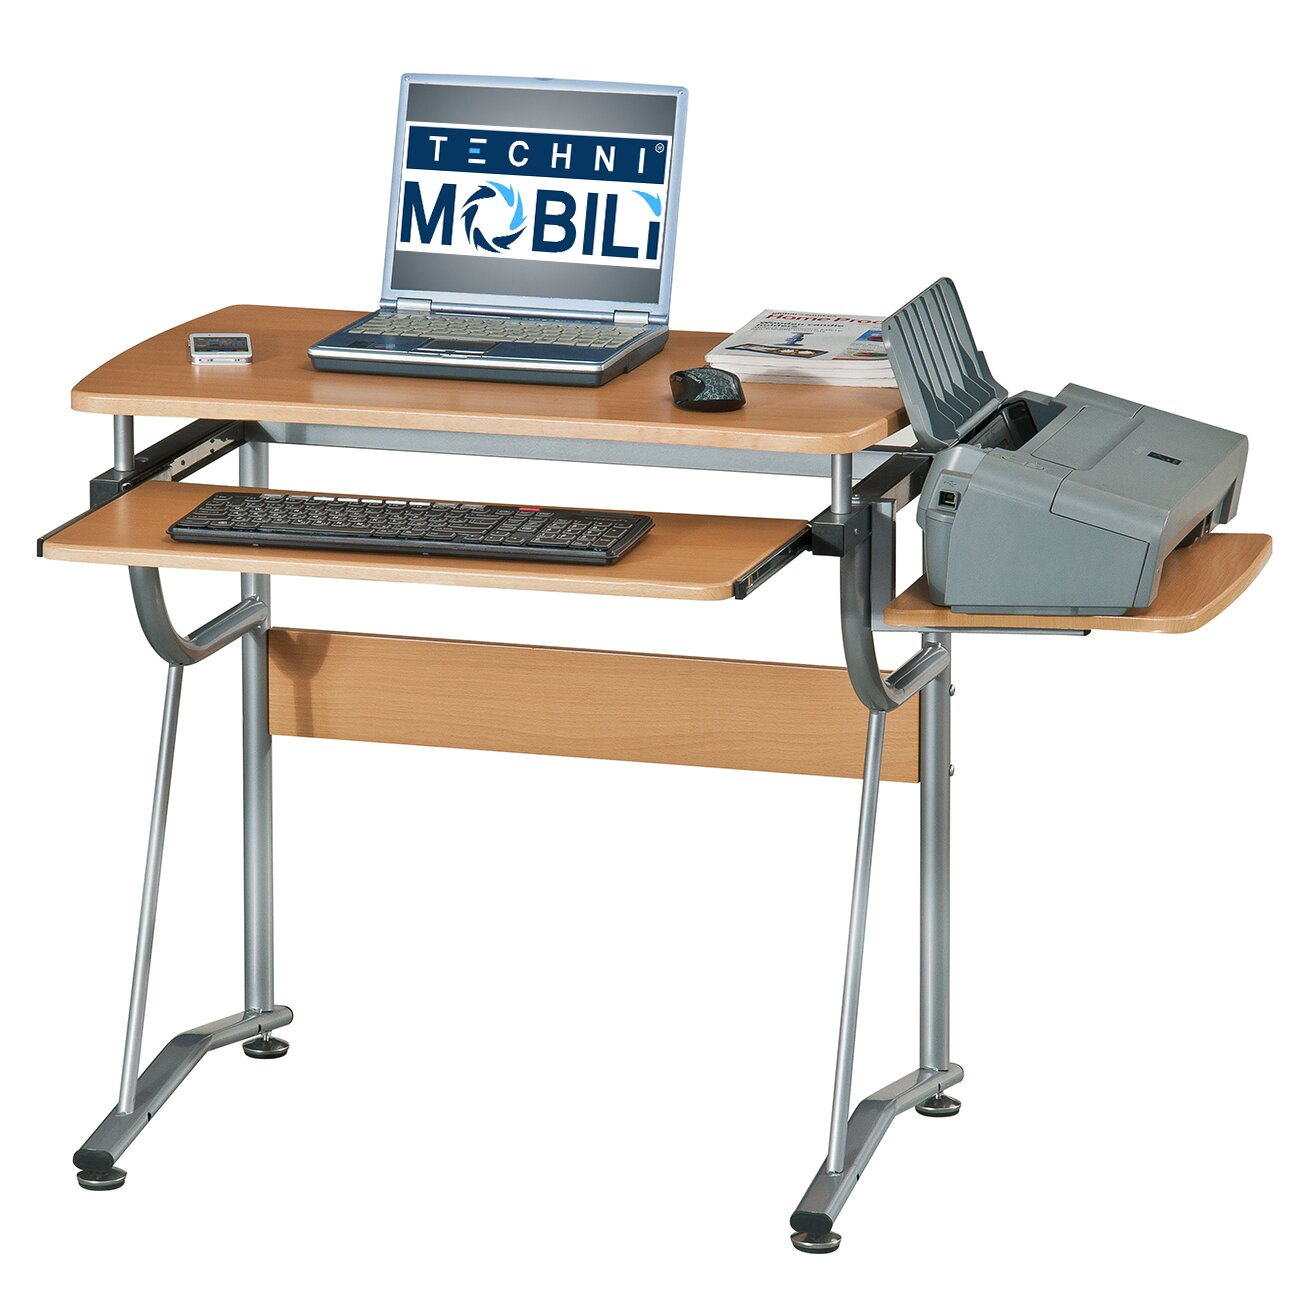 Techni Mobili Compact Computer Desk With Keyboard Tray And